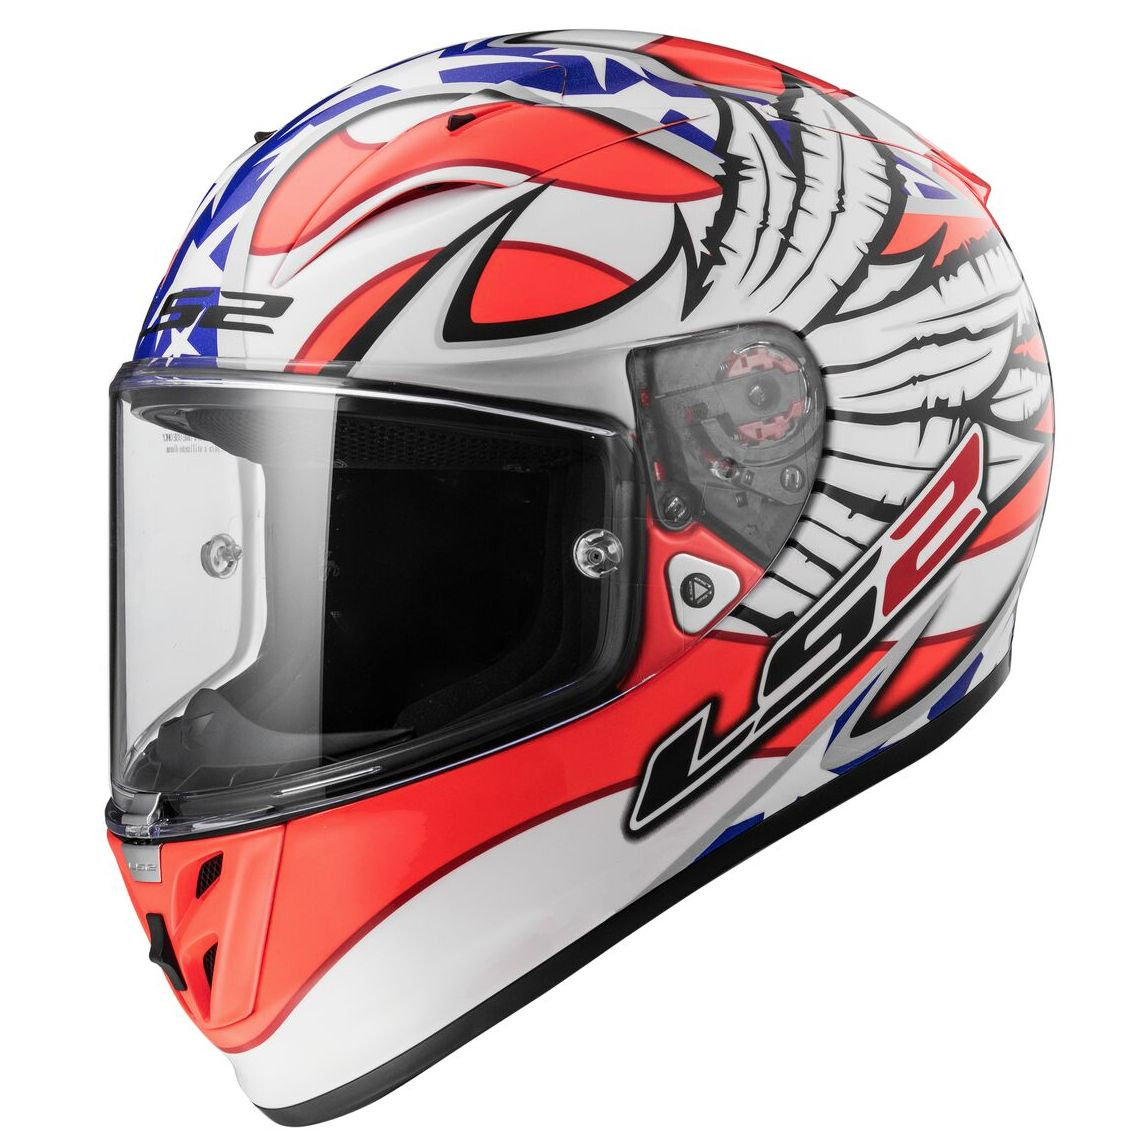 Casco LS2 outlet FF323 ARROW R EVO FREEDOM